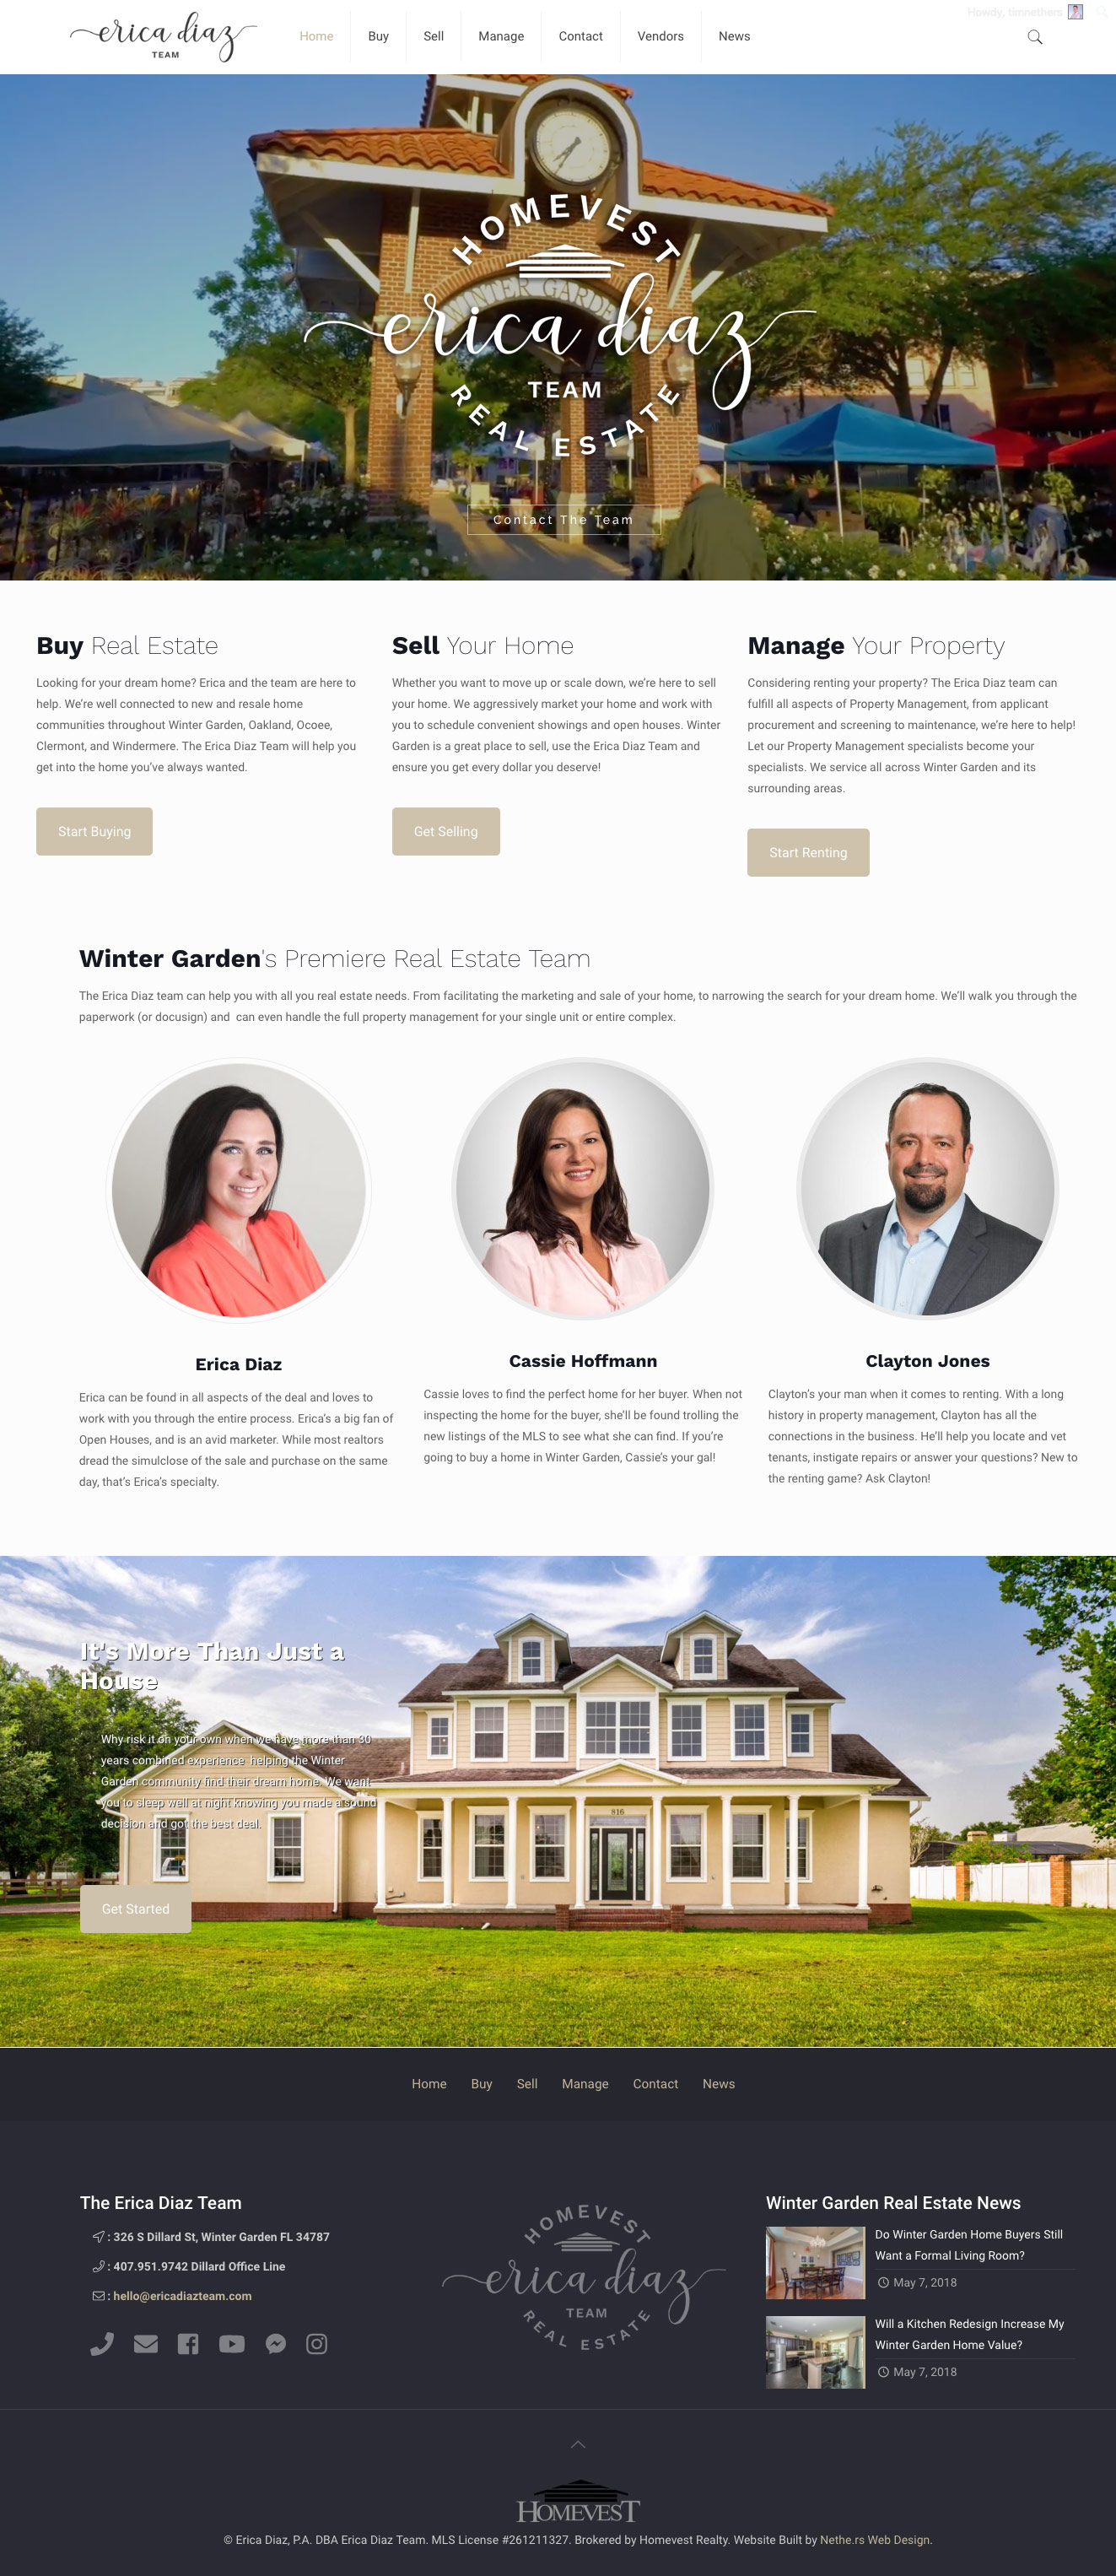 Responsive Website Design for Realtors